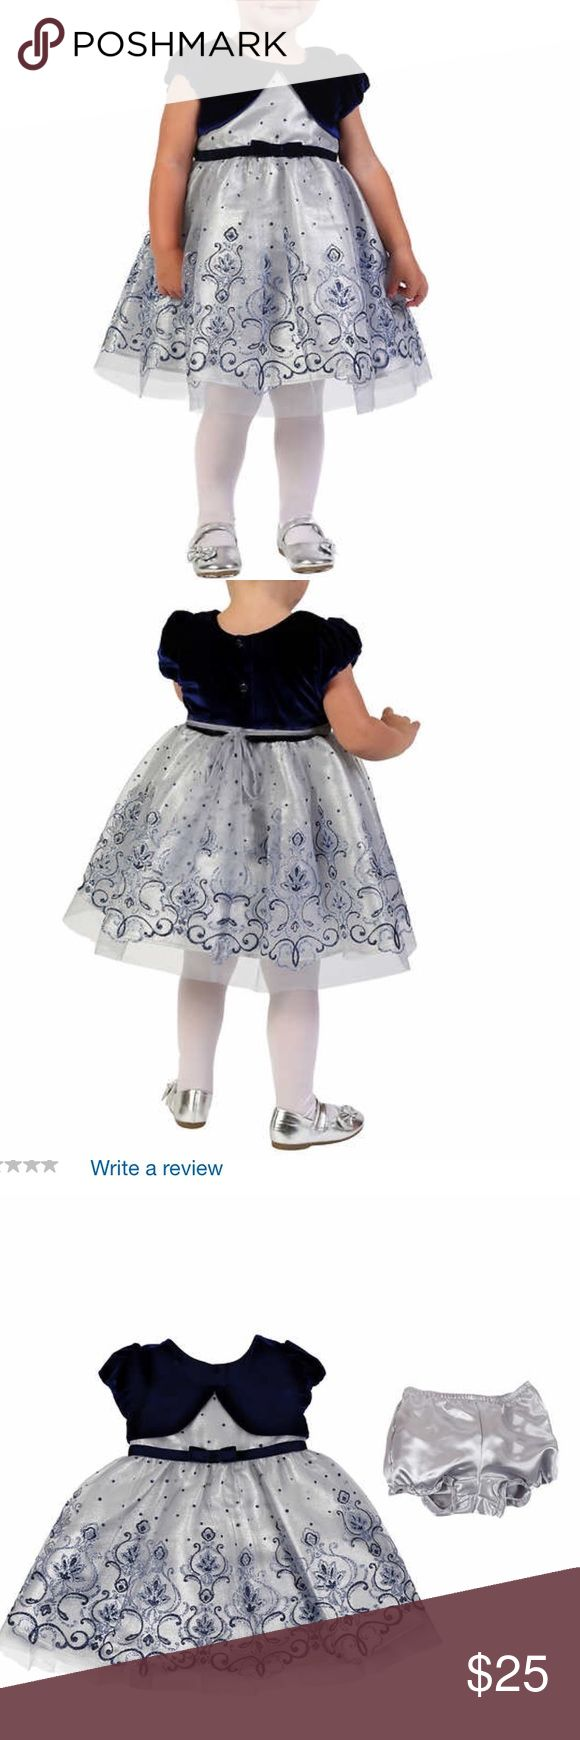 Jona Michelle Infant/Toddler Holiday Dress, Silver This dress has been worn once for holiday photos and is in Like New Condition ...  Cap Sleeves Skirt with Glitter Detail Diaper Cover Included for Sizes 12 Months  Machine Washable Jona Michelle Dresses Formal